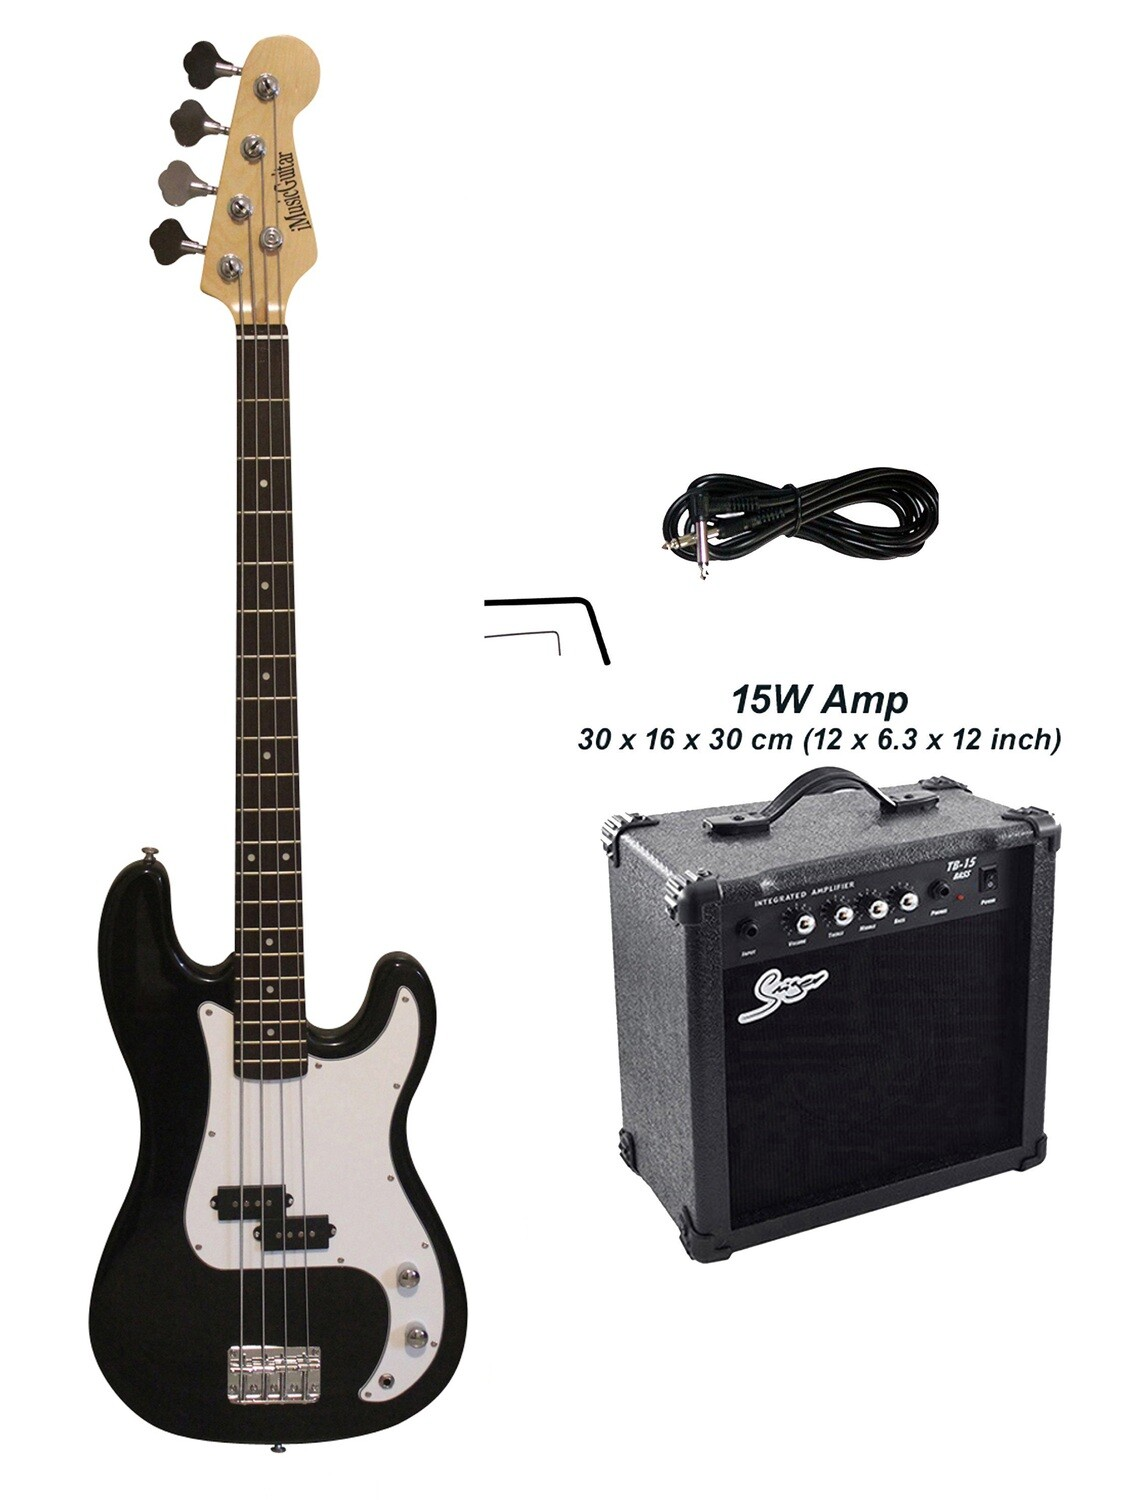 Bass Guitar with 15W Amp Package 4 String P style Black for Beginners iMEB871PKT